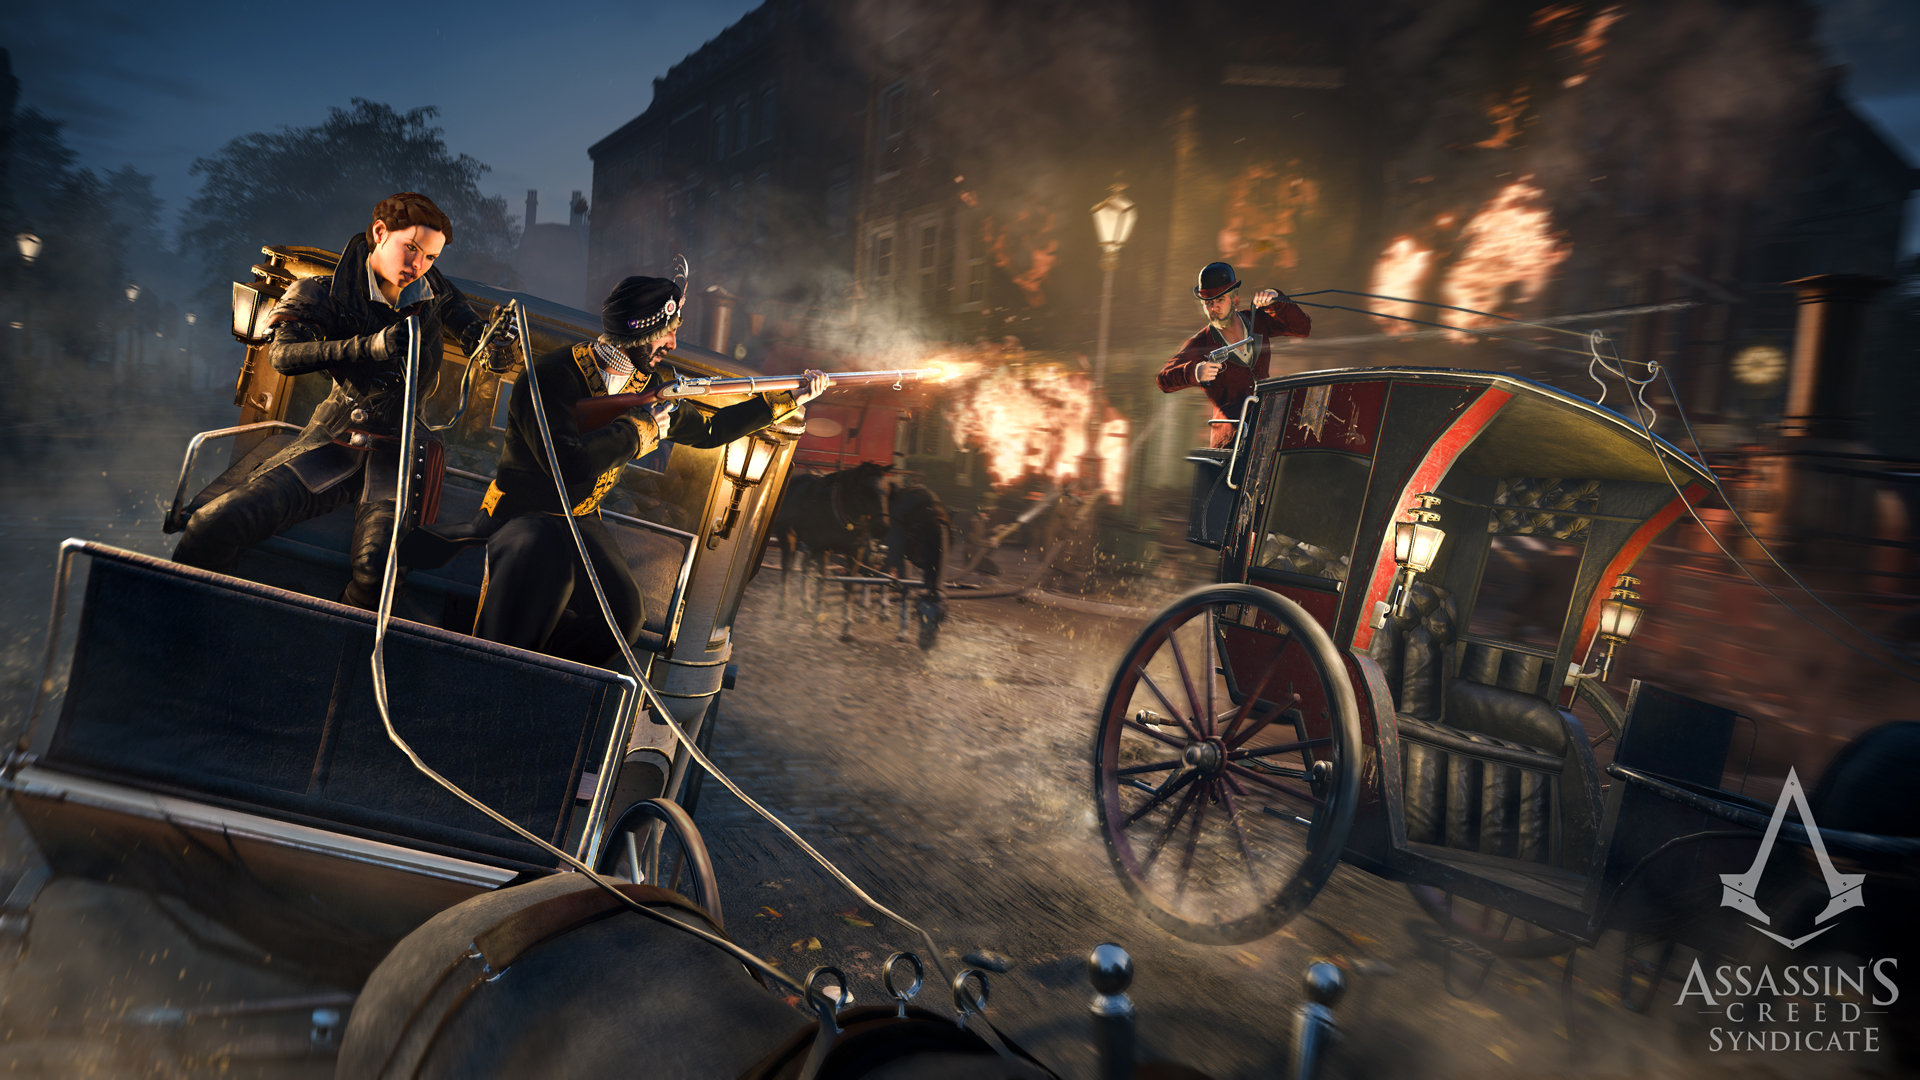 Pubg Wallpaper 4k Assassin S Creed Syndicate Dlc The Last Maharaja Is Out